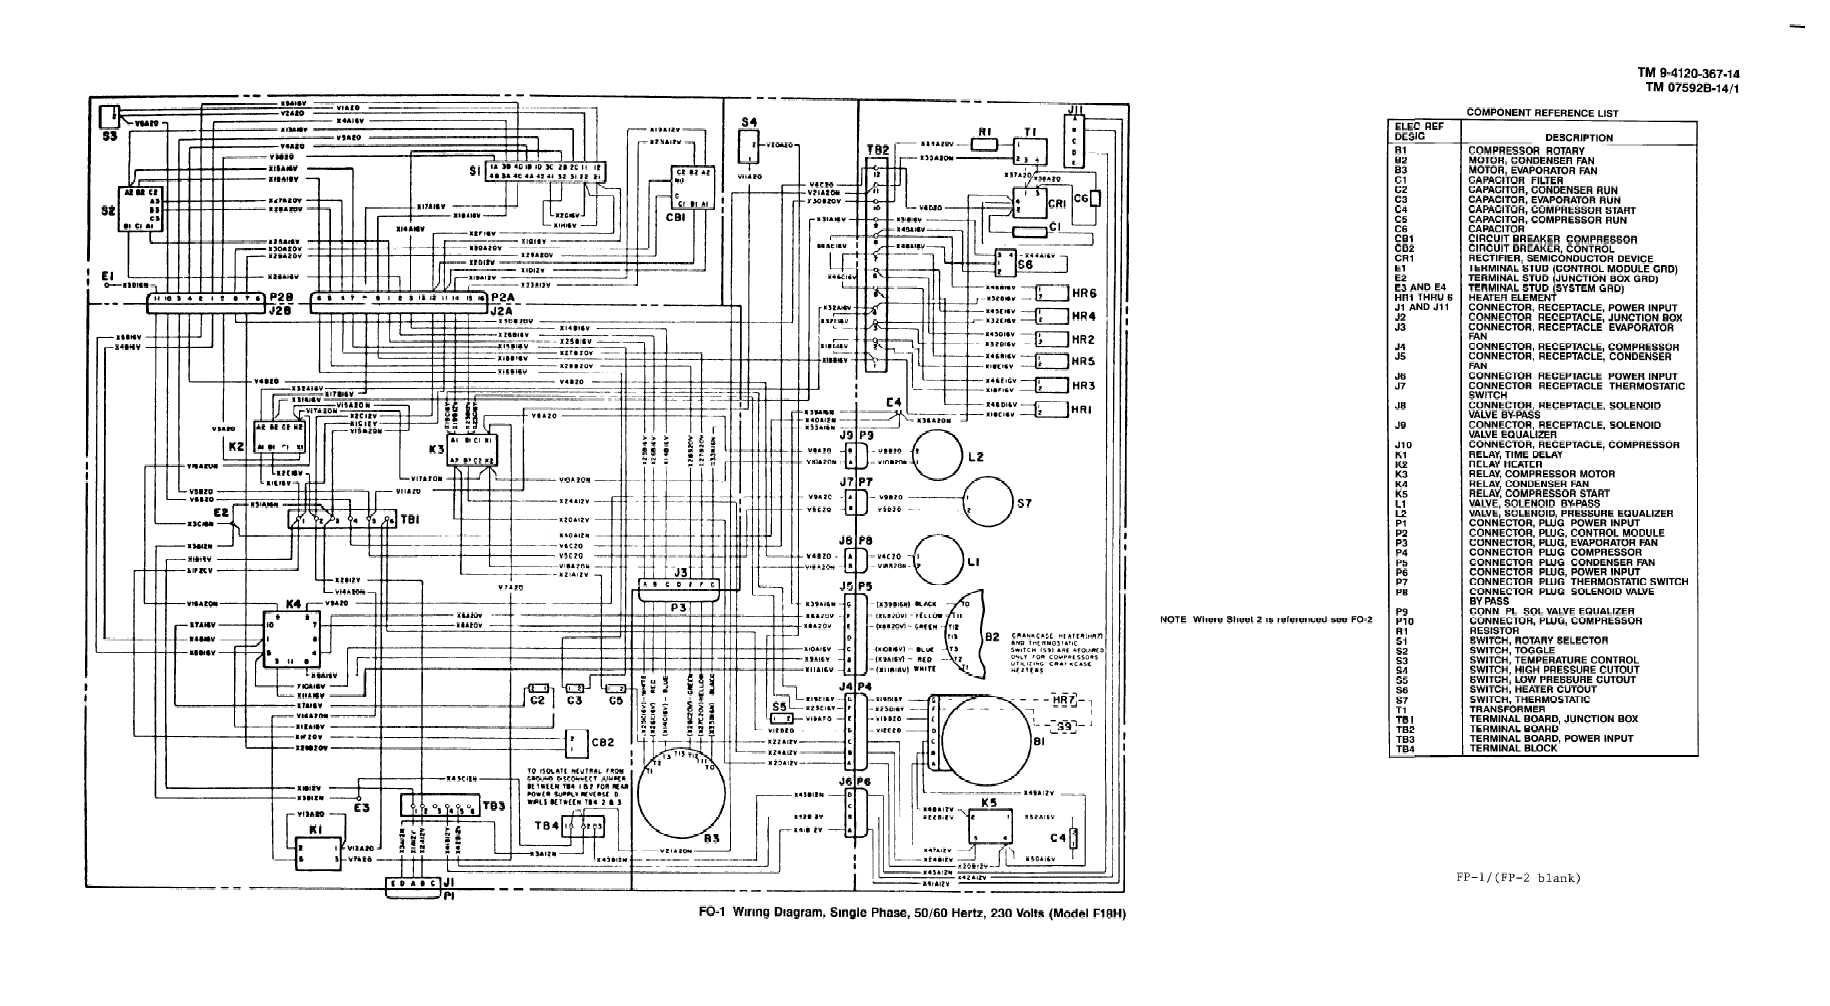 230 Single Phase Wiring Diagram Induction Motor Diagrams